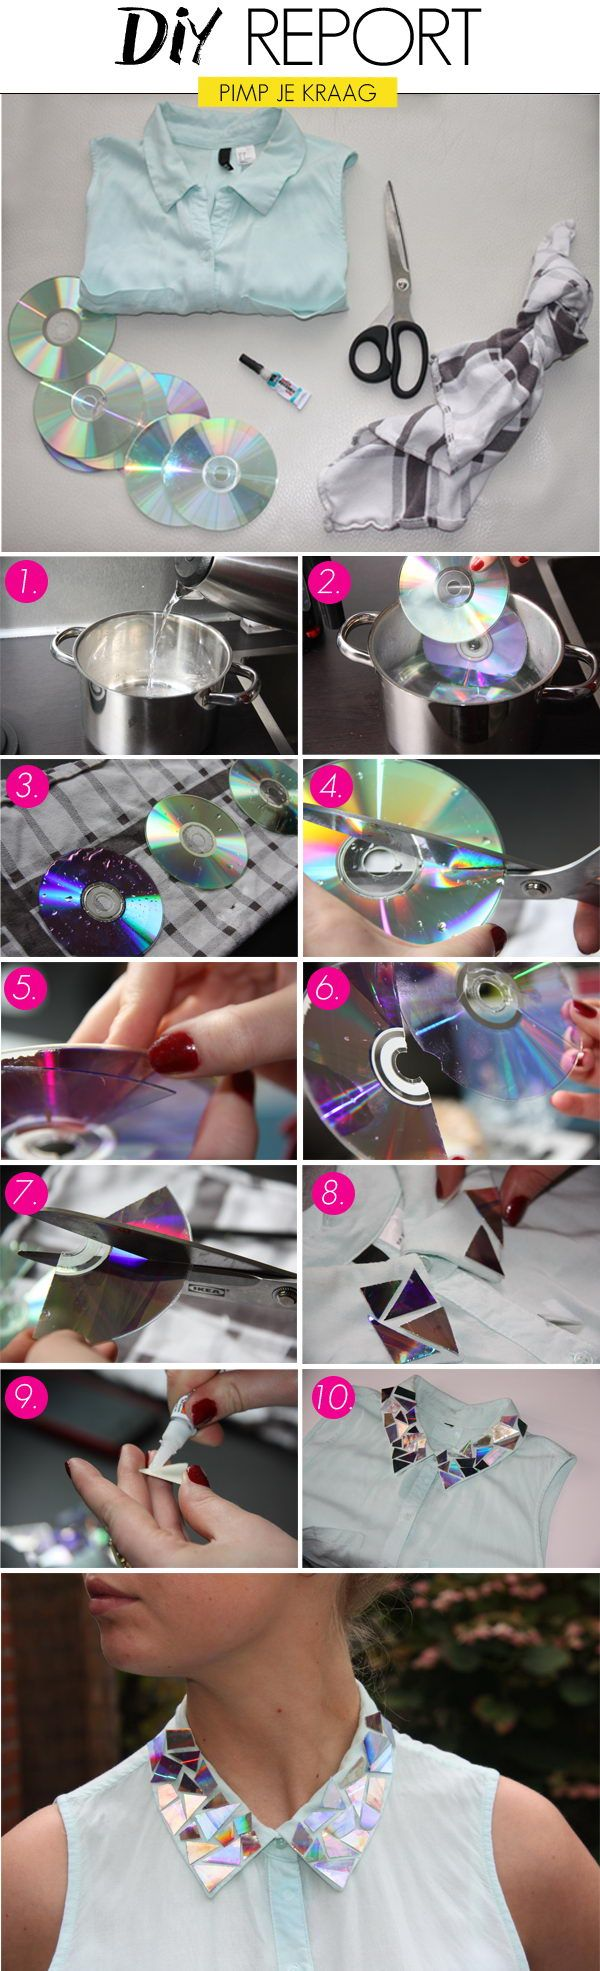 Add a shiny collar to your boring blouse with old CDs. http://hative.com/fashionable-diy-clothes-ideas/